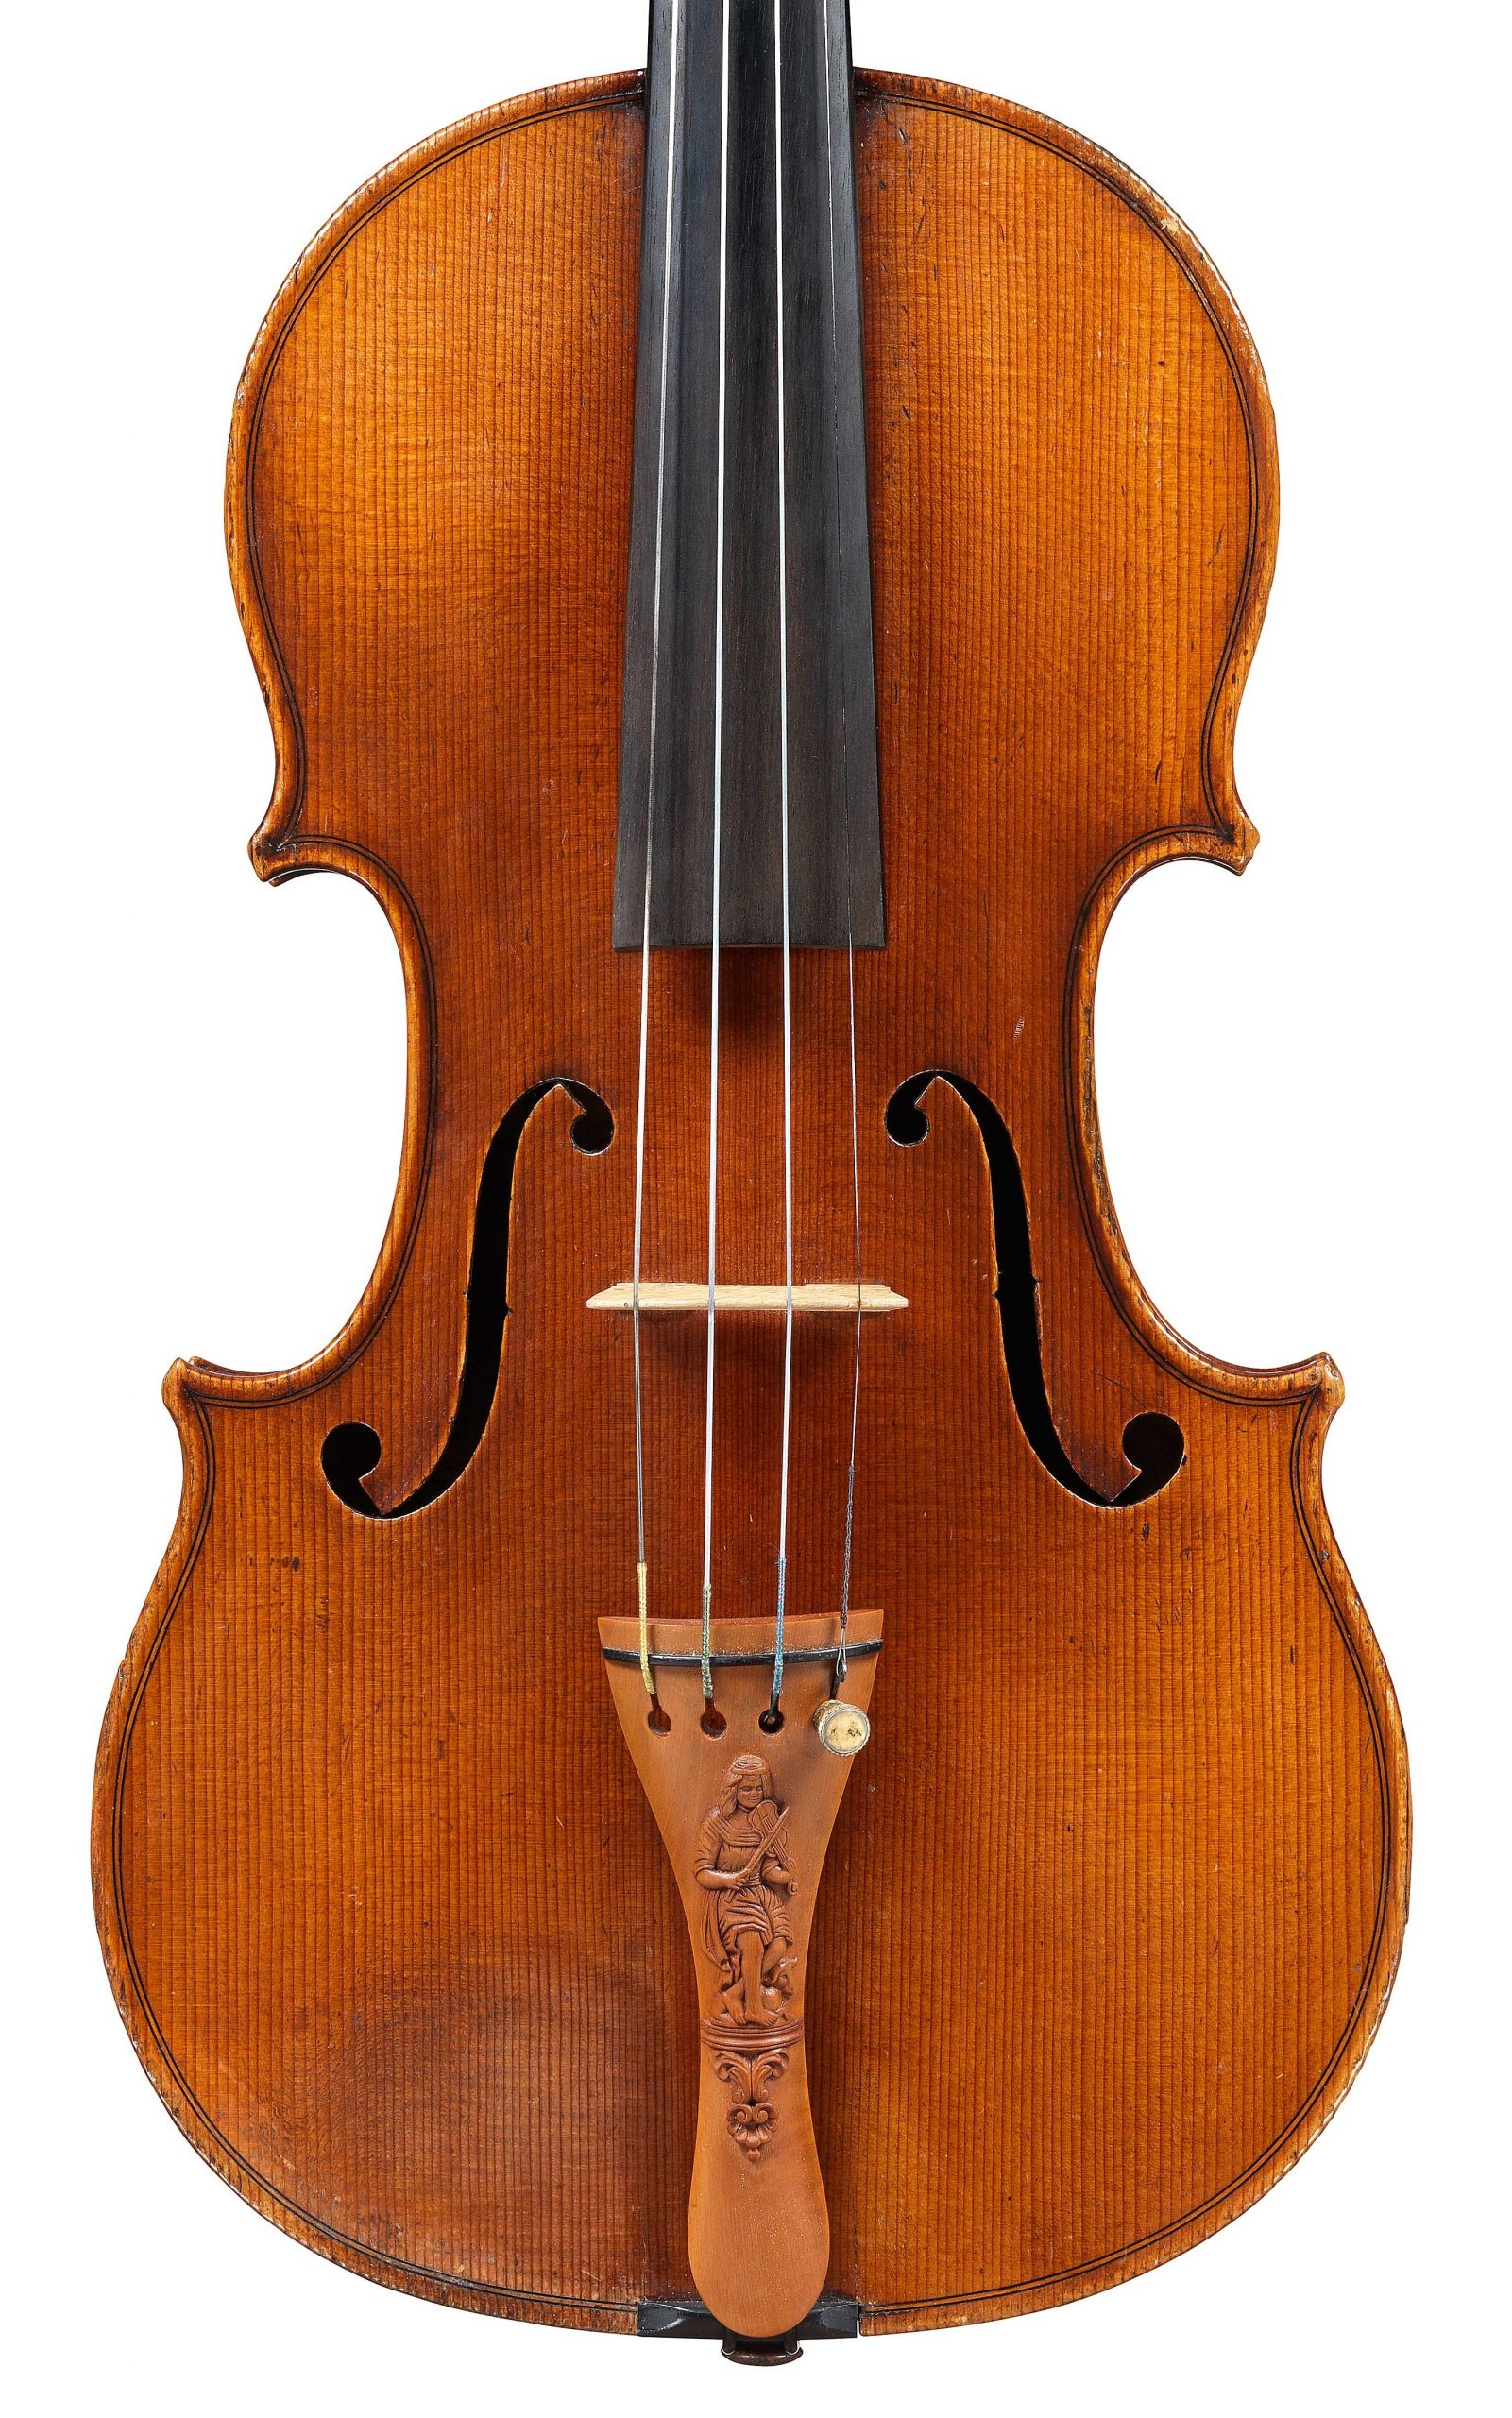 Front of decorated violin by JB Vuillaume, ex-Caraman de Chimay, dated 1865, exhibited by Ingles & Hayday at Sotheby's in 2012